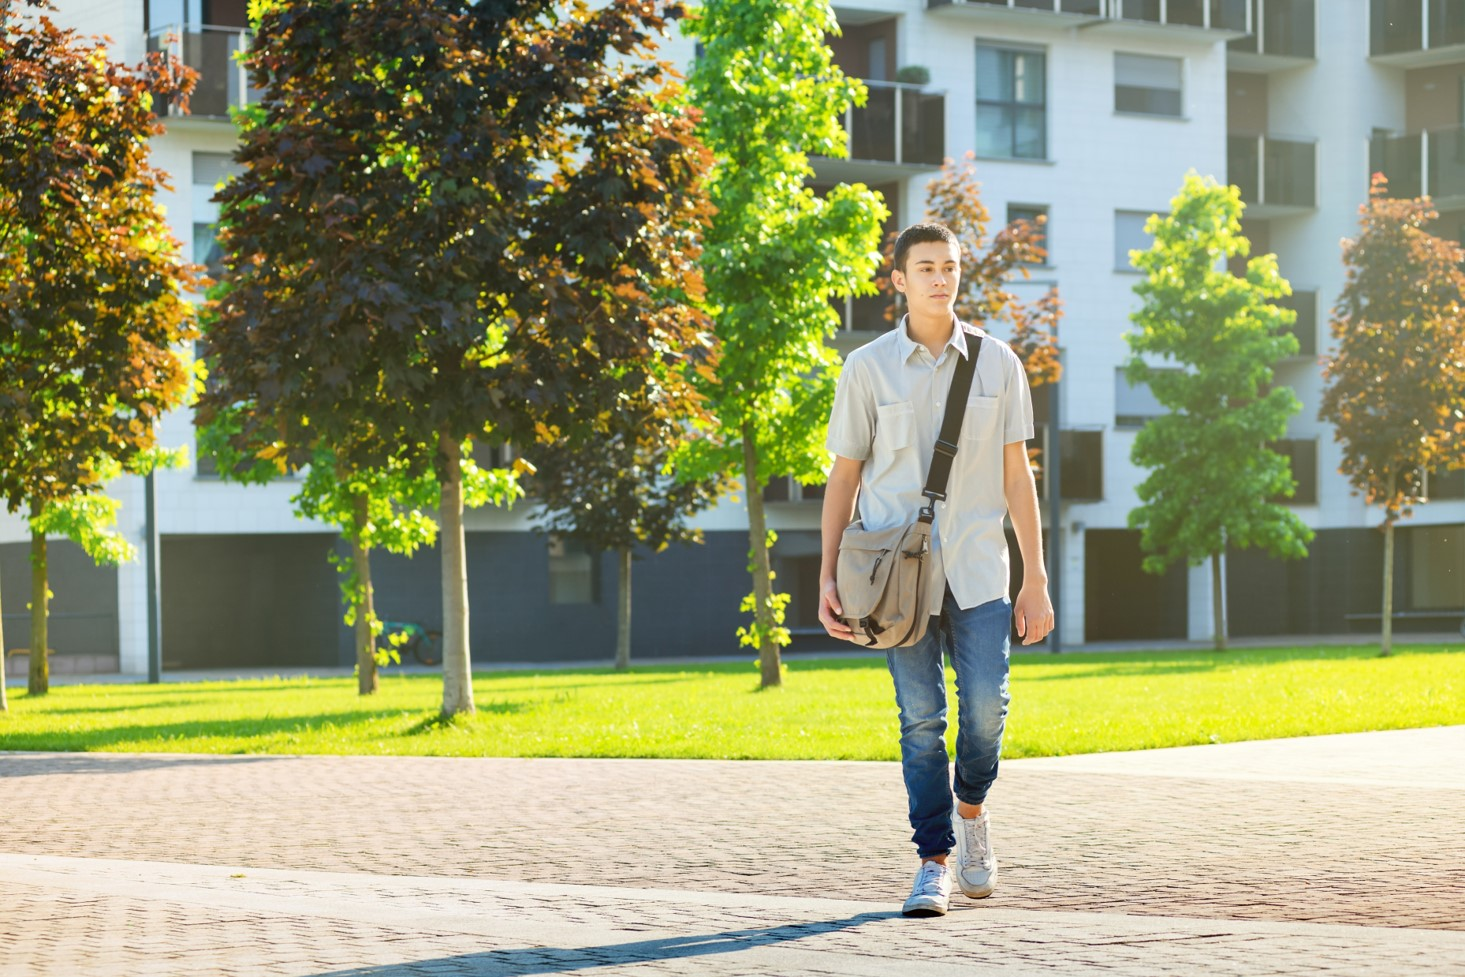 5 Tips on How to Find The Best Apartment Off-campus